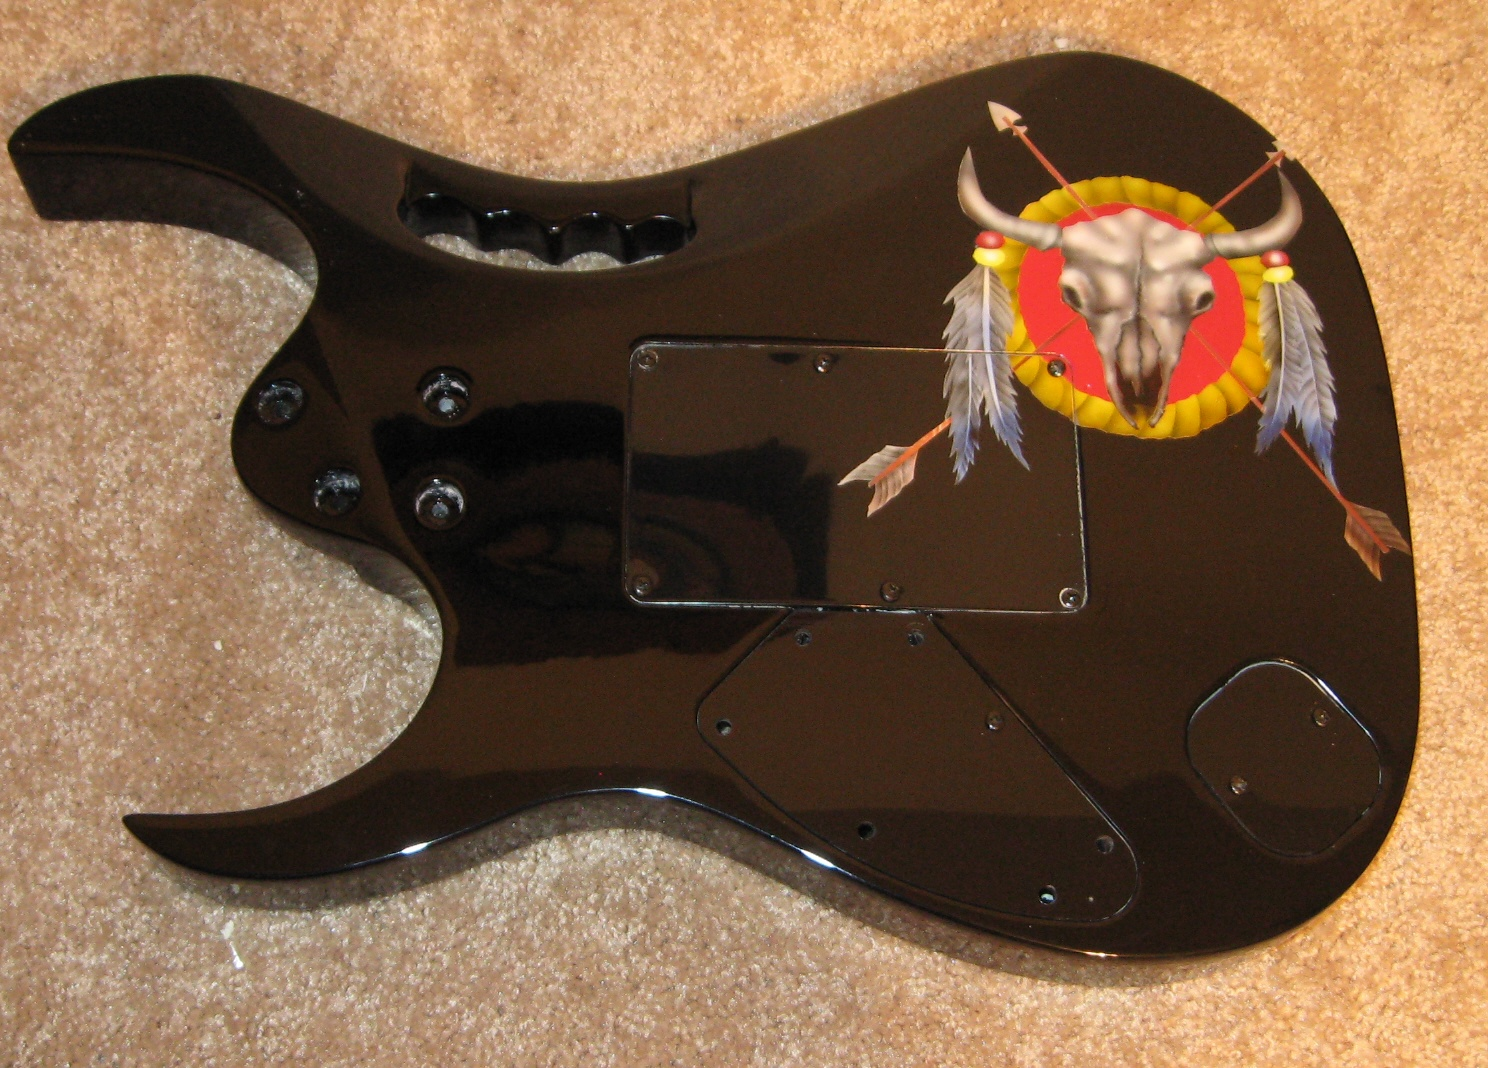 Guitar-Greg-Cassell-Ibanez-Native-American-1 (24)